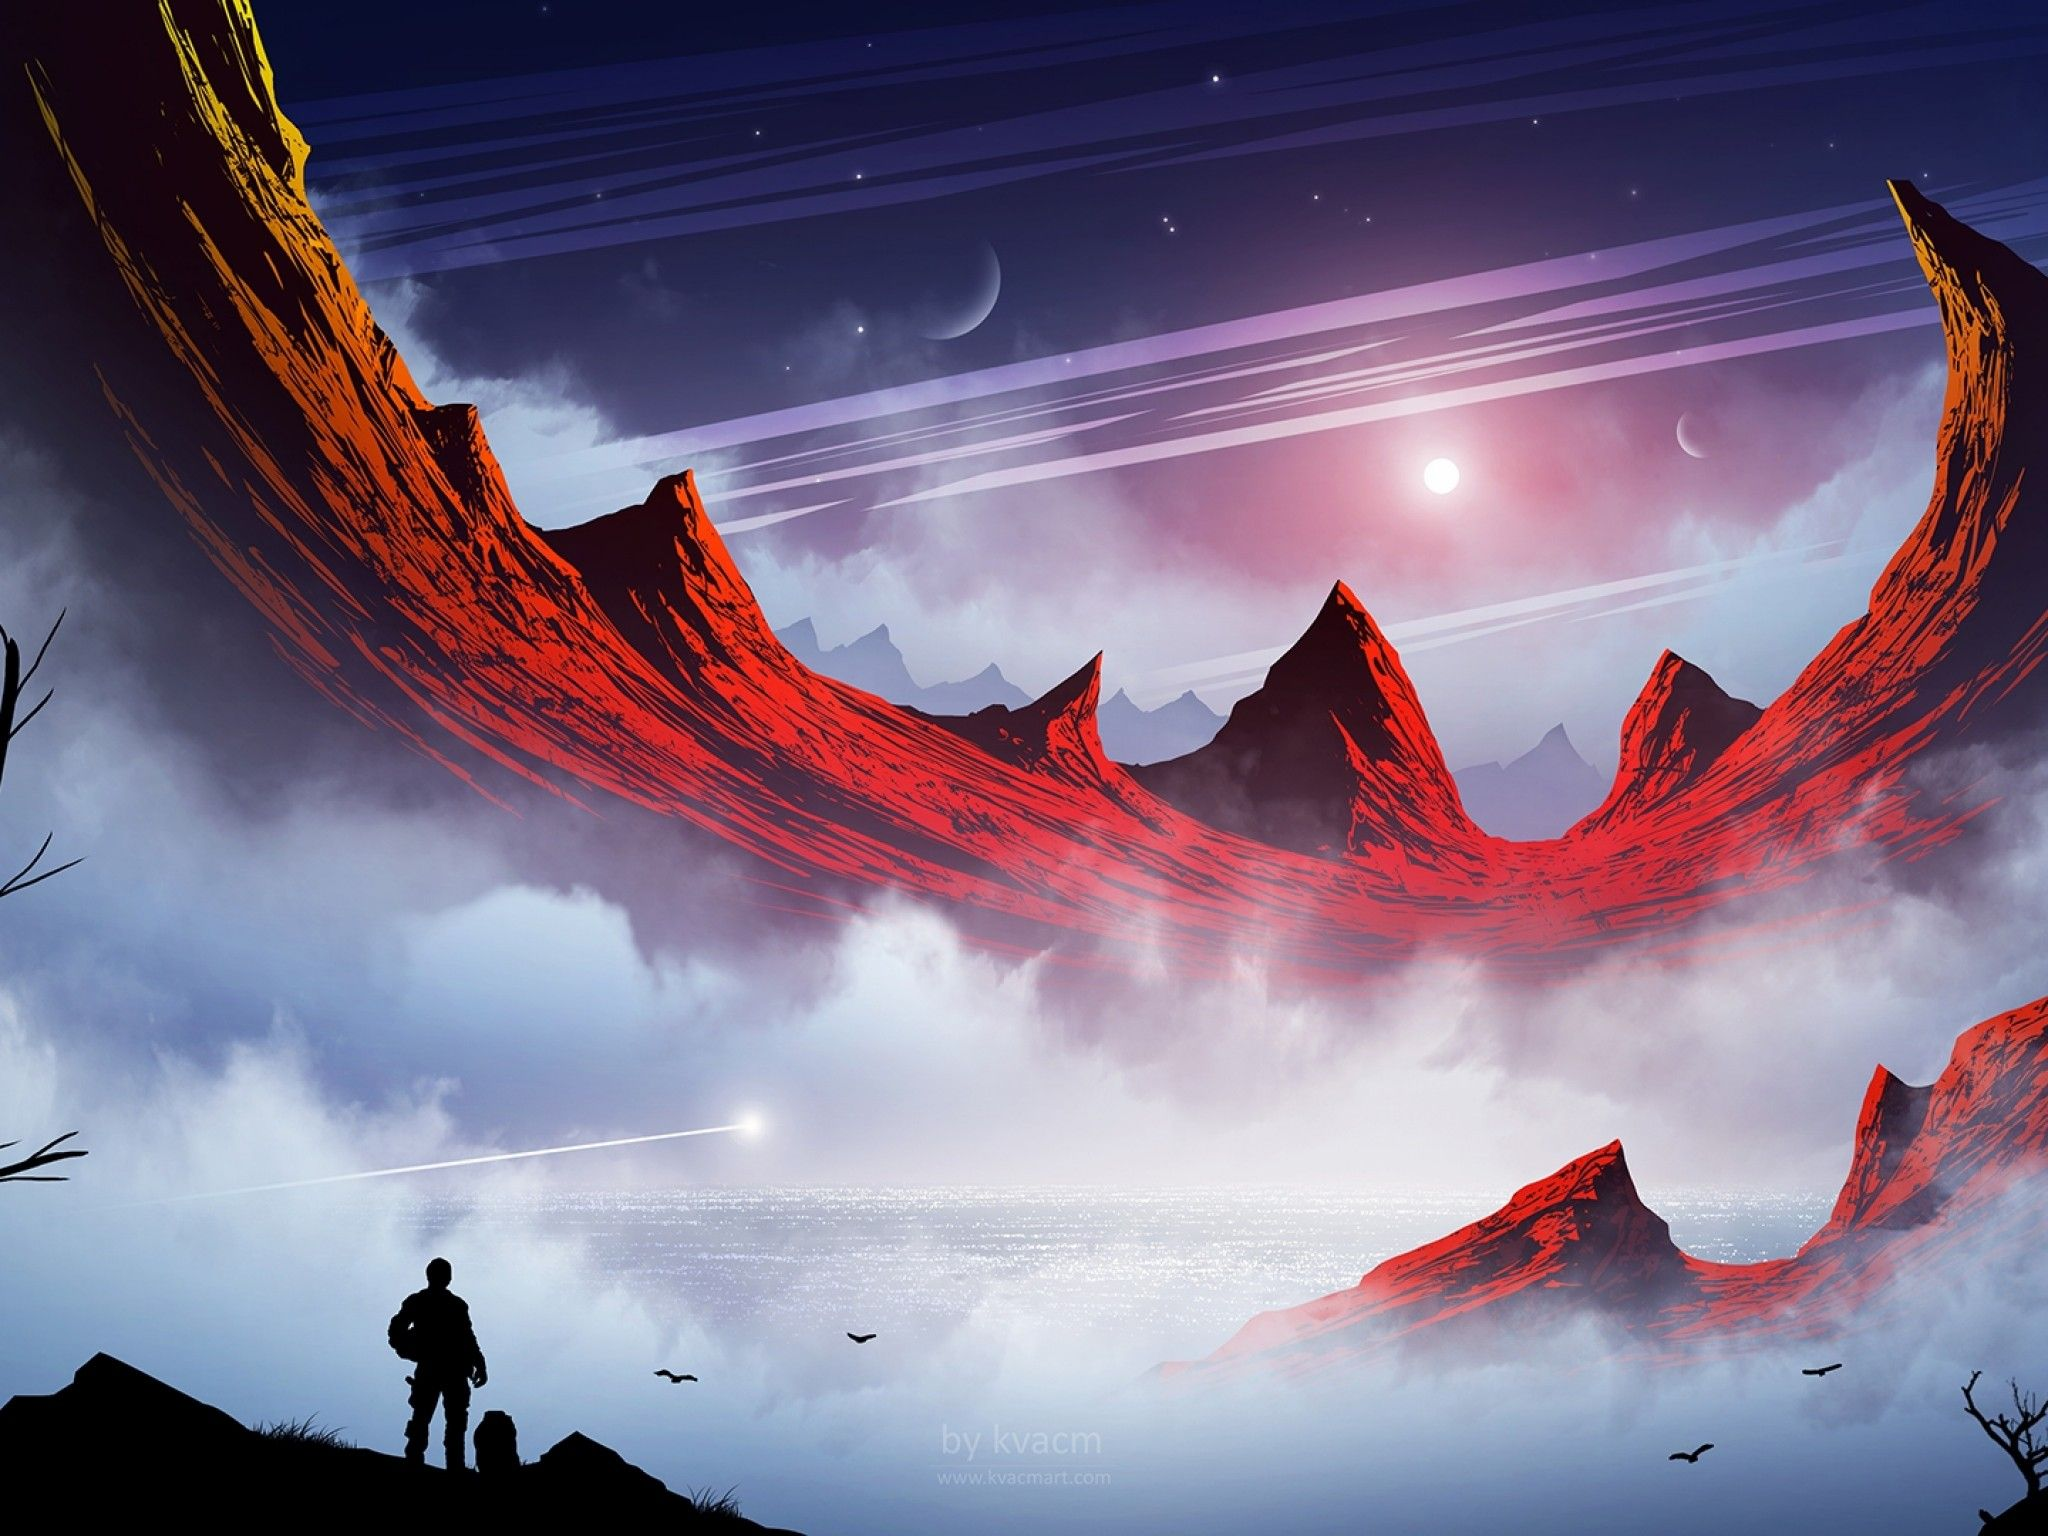 2048x1536 Download 2048x1536 Fantasy Landscape, Mountains, Man, Planets, Sci ...